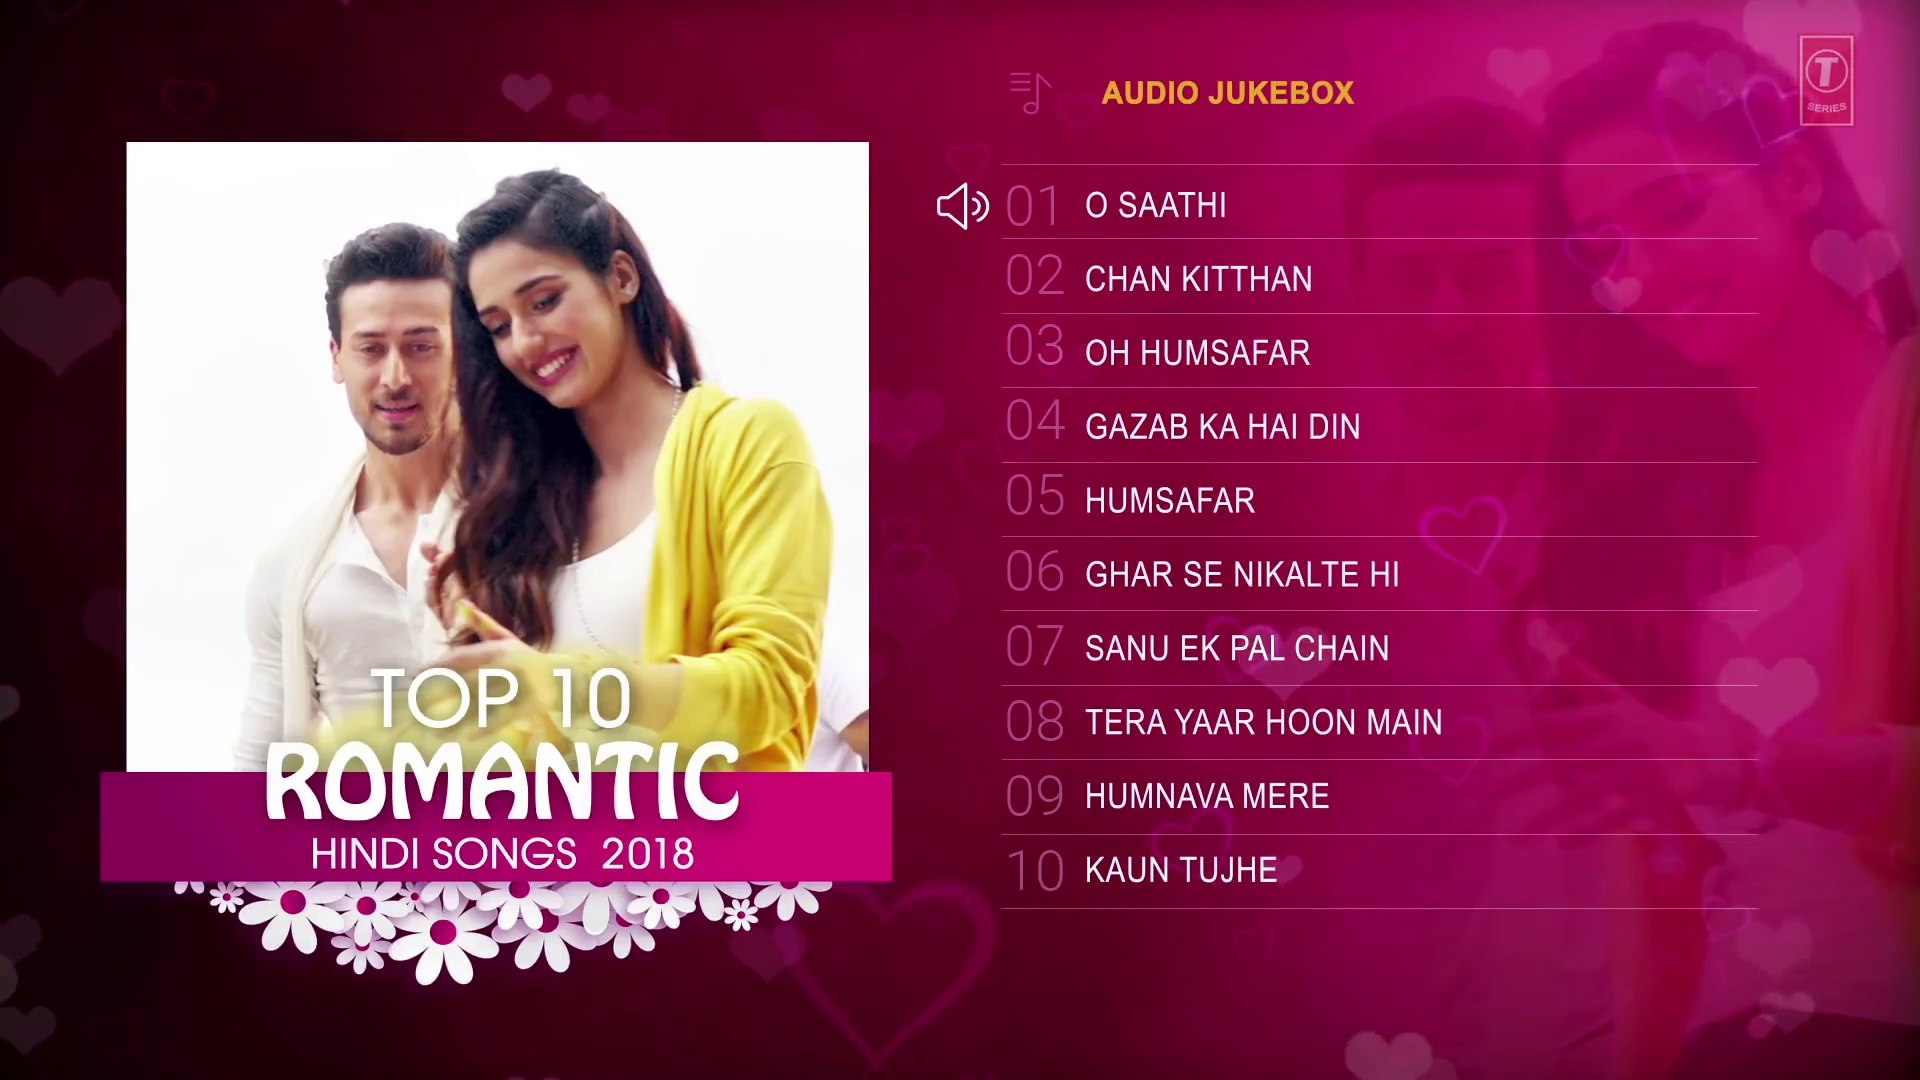 New Love Songs Top 10 Romantic Hindi Songs Hd Full Songs Audio Jukebox Latest Love Songs Pk Hungama Masti Official Channel Video Dailymotion Chaiyya chaiyya (00:00) singer : new love songs top 10 romantic hindi songs hd full songs audio jukebox latest love songs pk hungama masti official channel